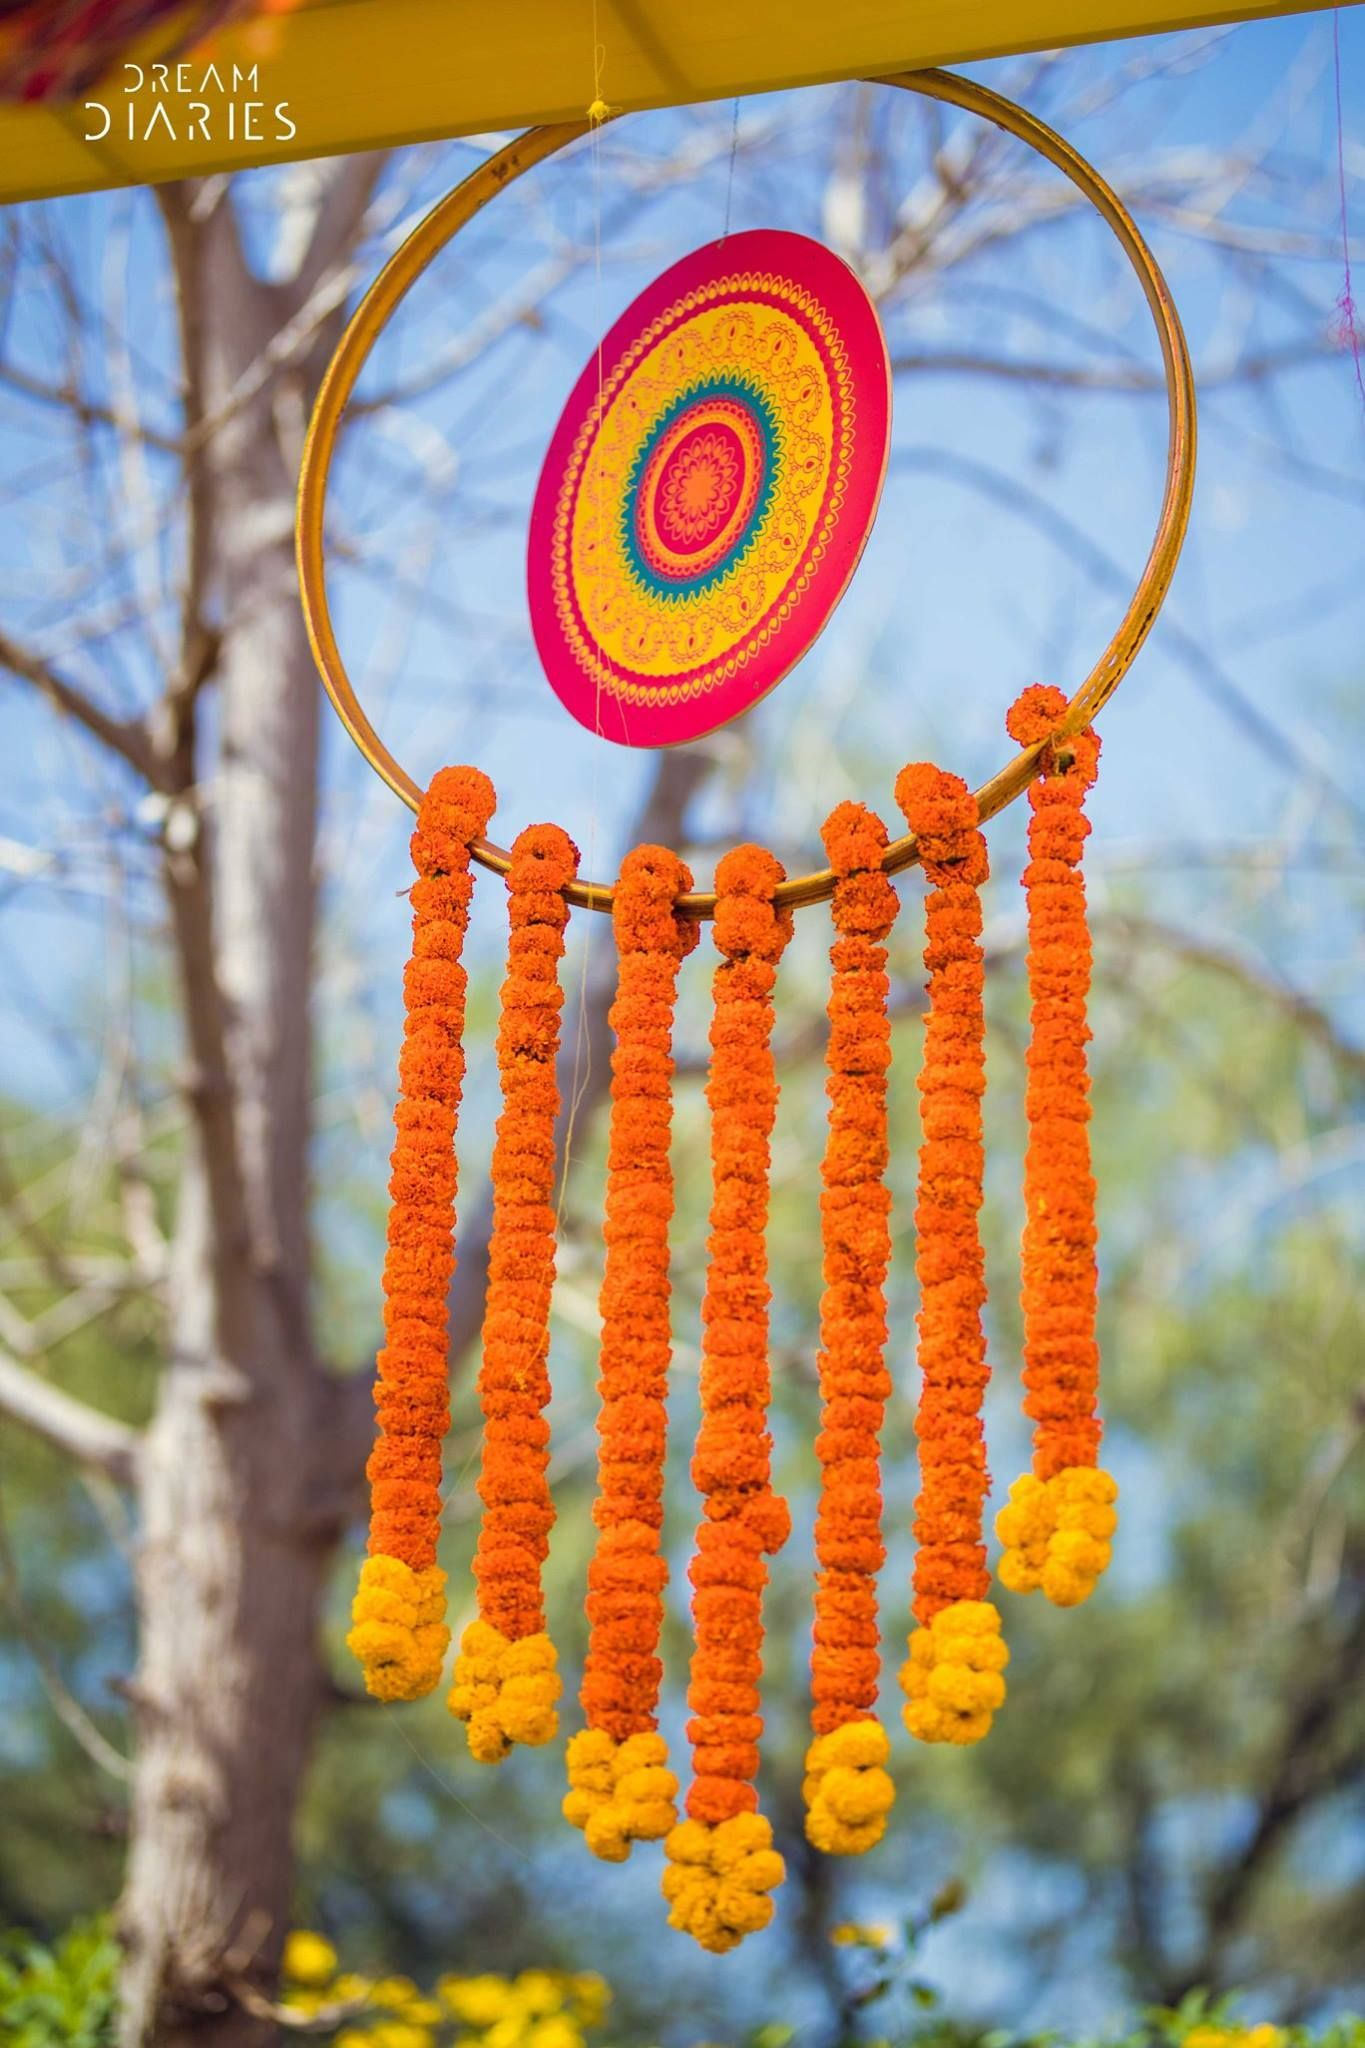 Super fun diy mehndi decor ideas to steal from your fav filmy mehendi decor inspiration diy decor ideas hoop with hanging marigold floral chains indian wedding decor fun mehendi ideas photo credits every junglespirit Image collections